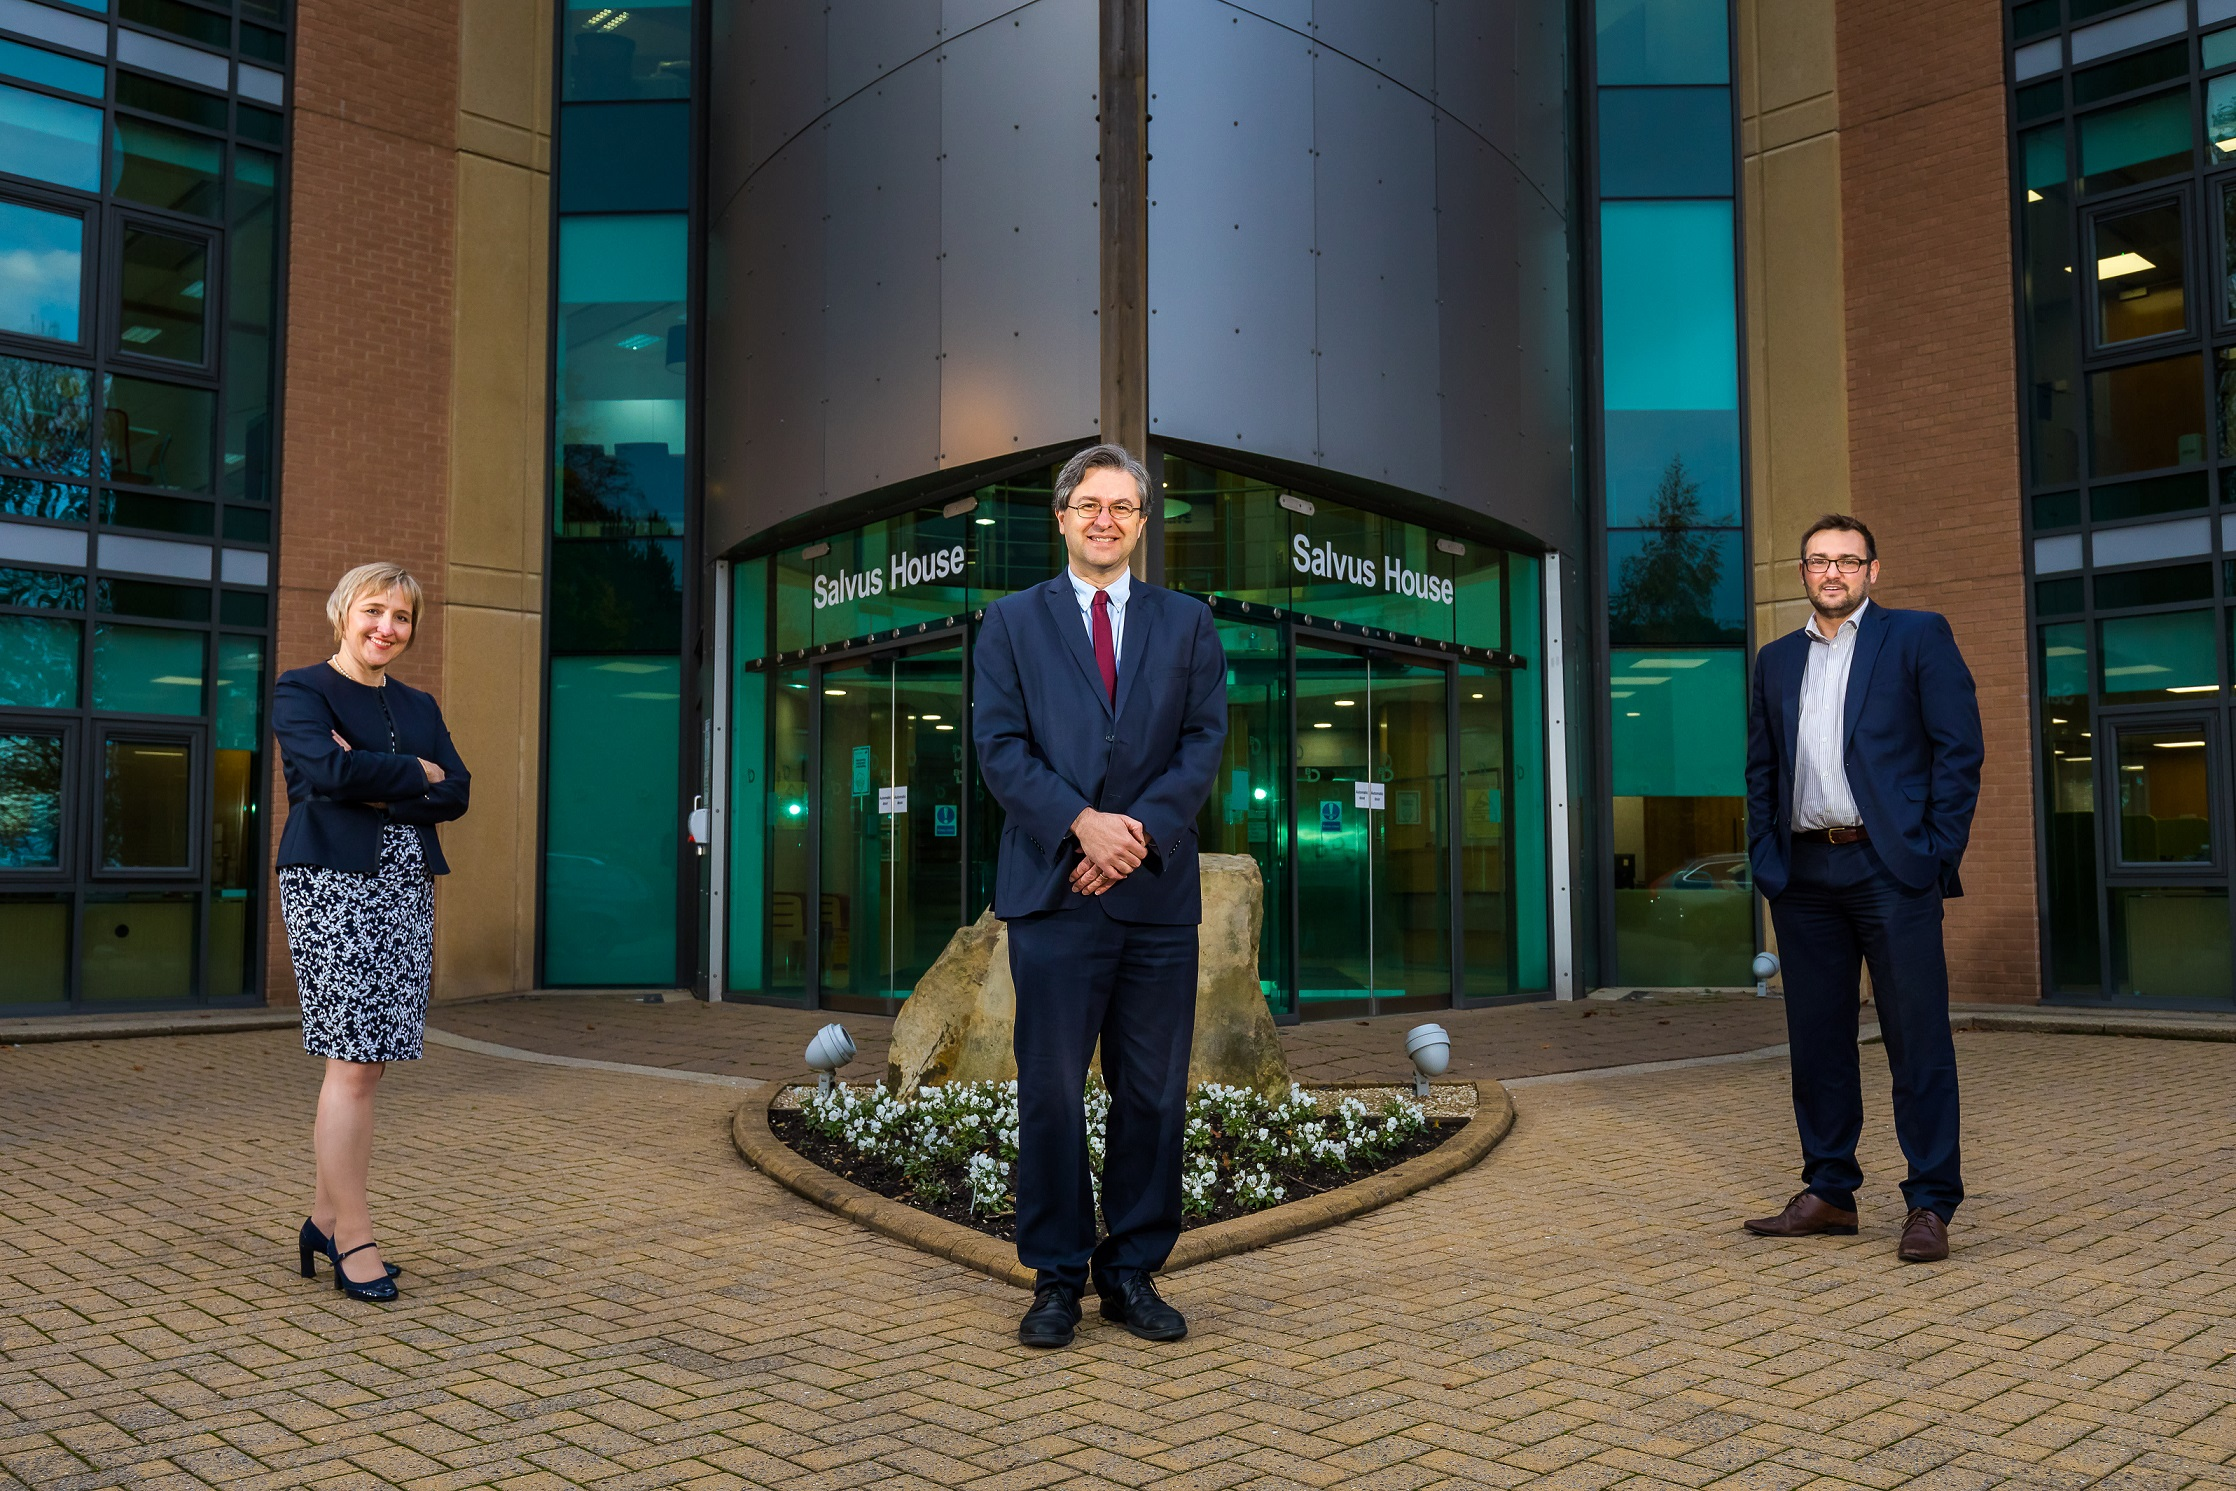 L/R - Sarah Salven (MD of Business Durham), Cllr Simon Henig (Chief Executive of Durham County Council) and Cllr Carl Marshall at Salvus House, Durham.